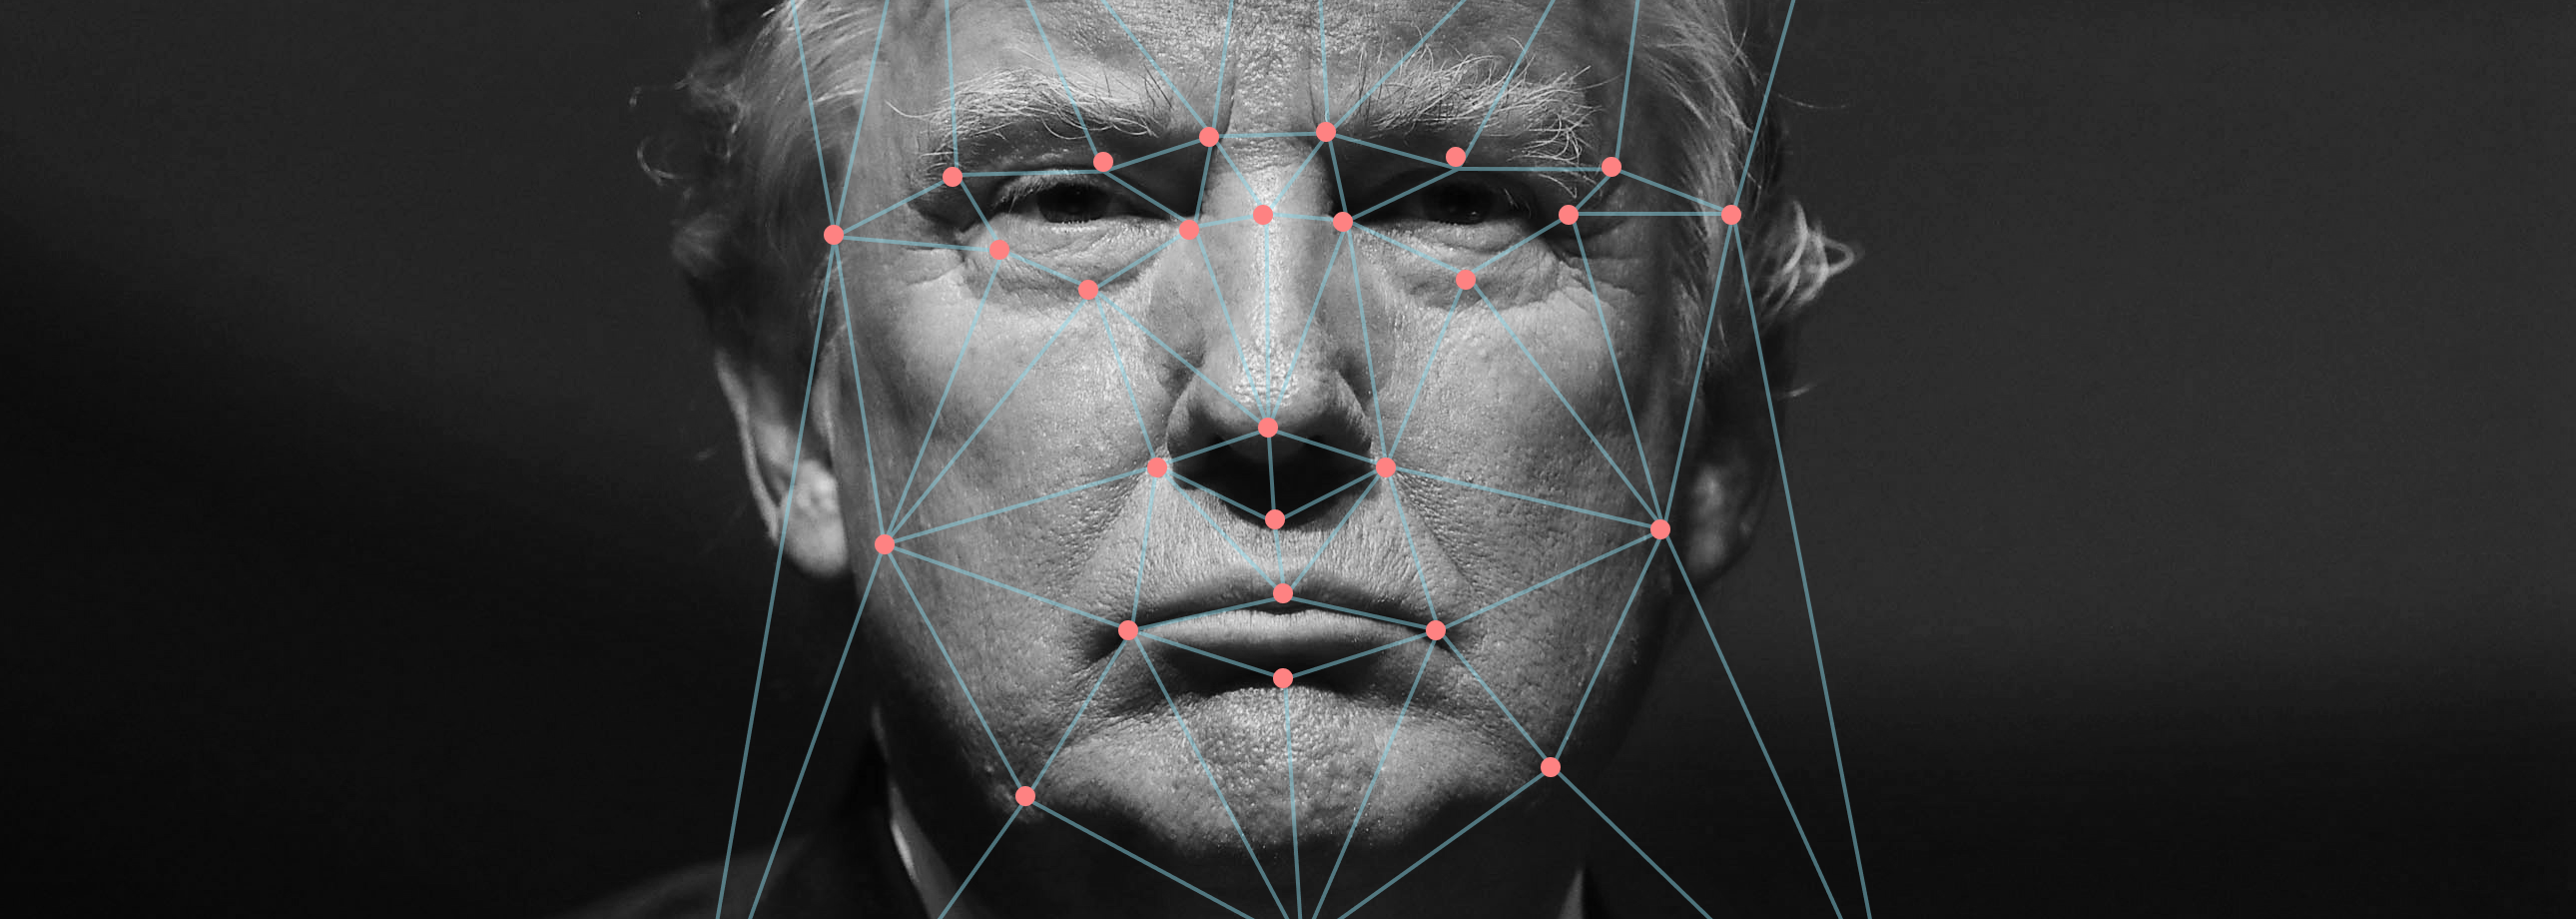 Close up of Donald Trump's face with analysis pattern applied, to suggest this article is scientific